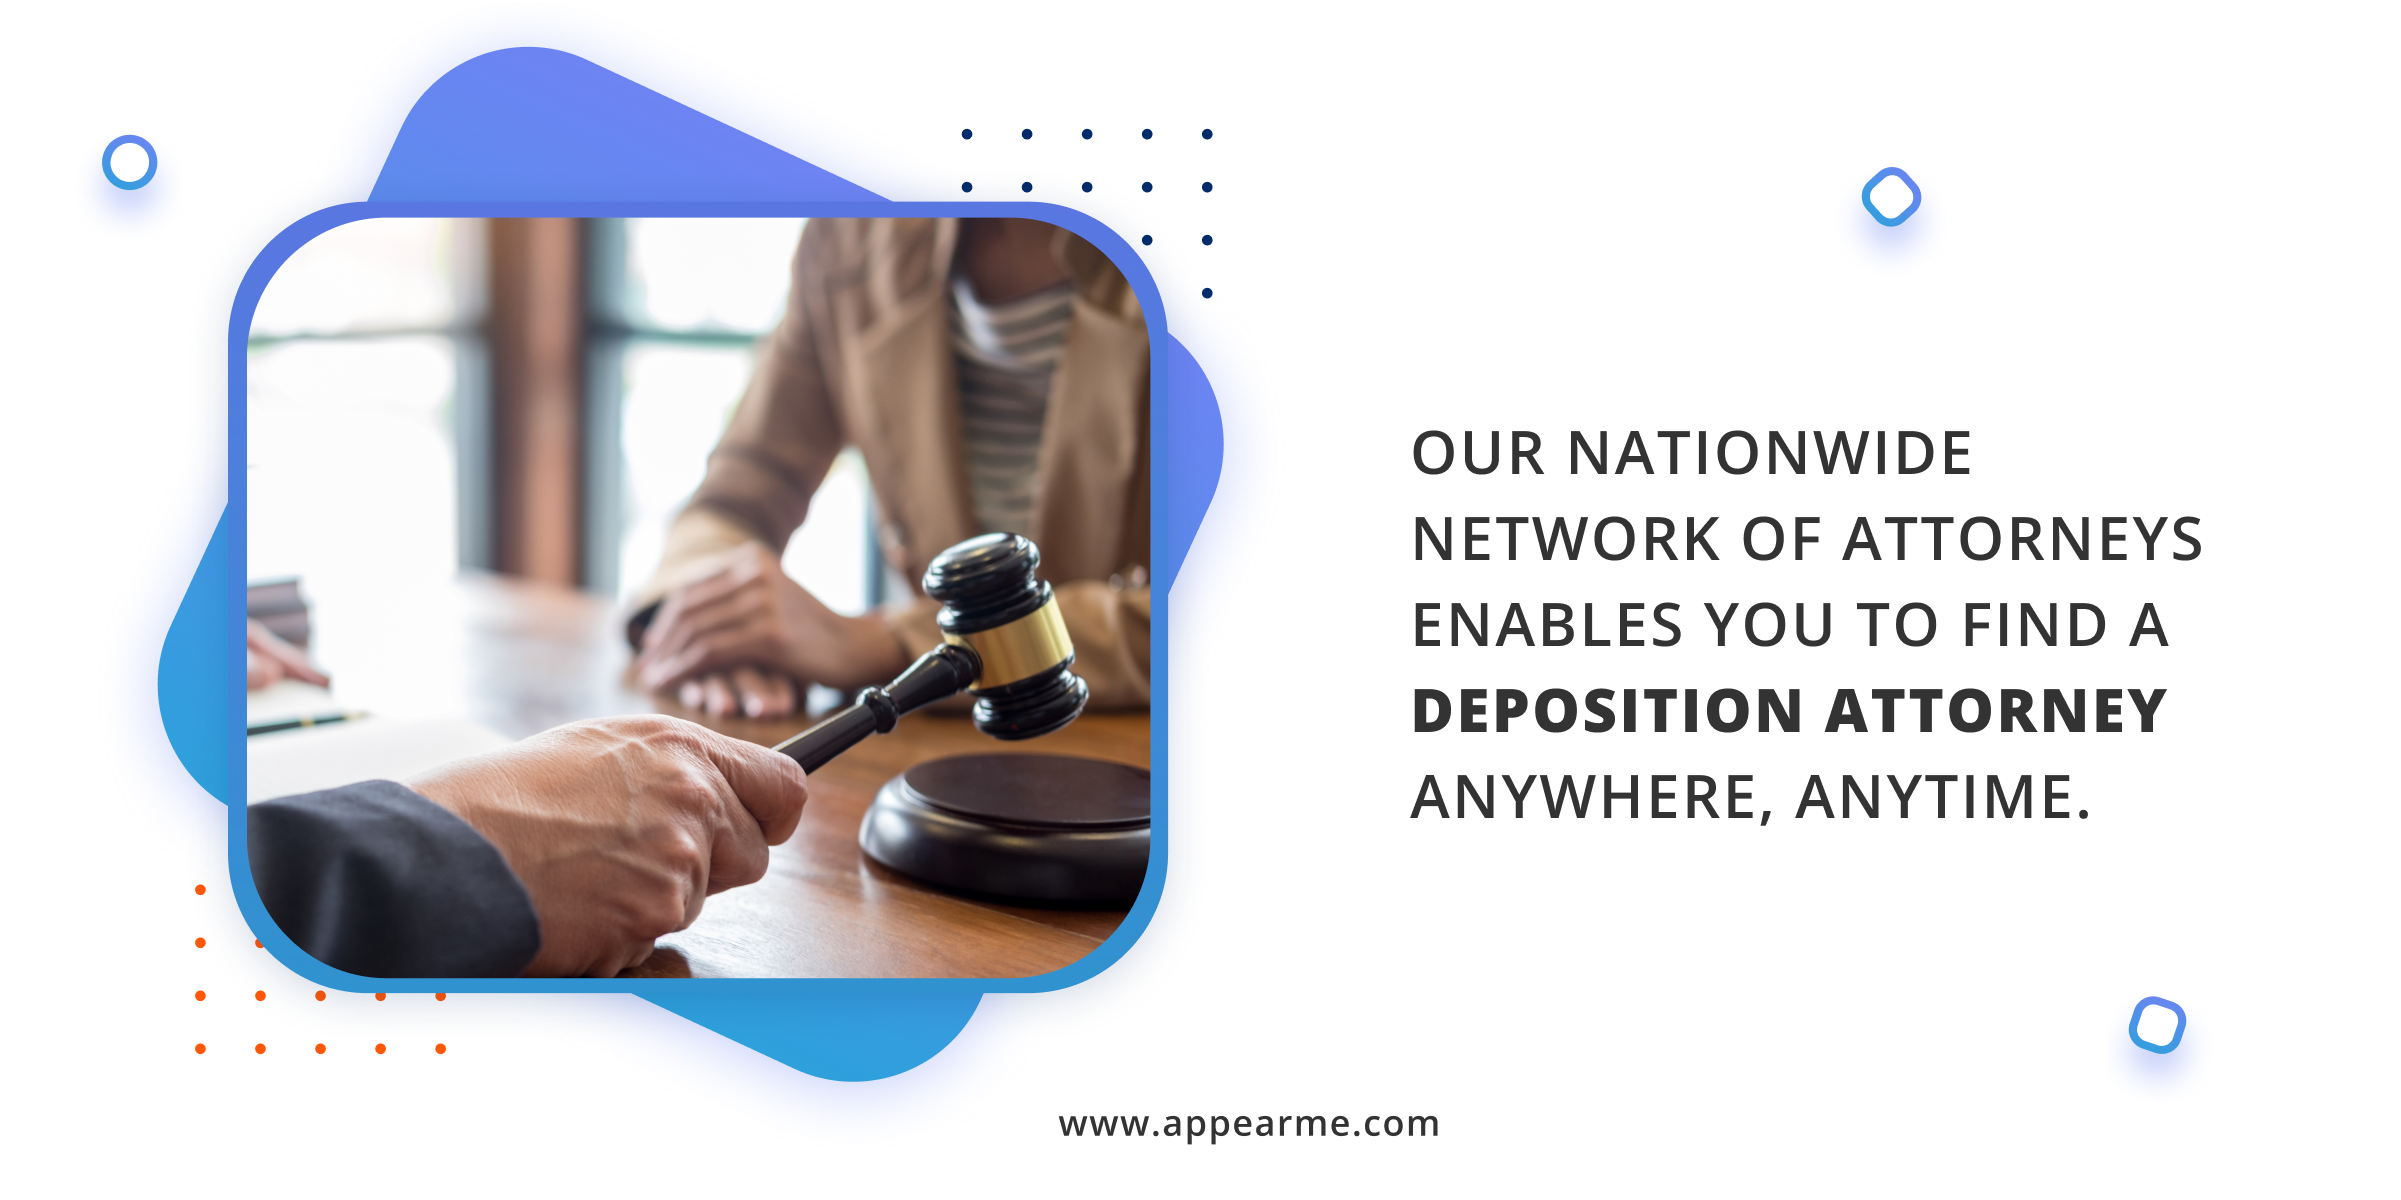 Our Nationwide Network of Attorneys Enables You to Find a Deposition Attorney Anywhere, Anytime